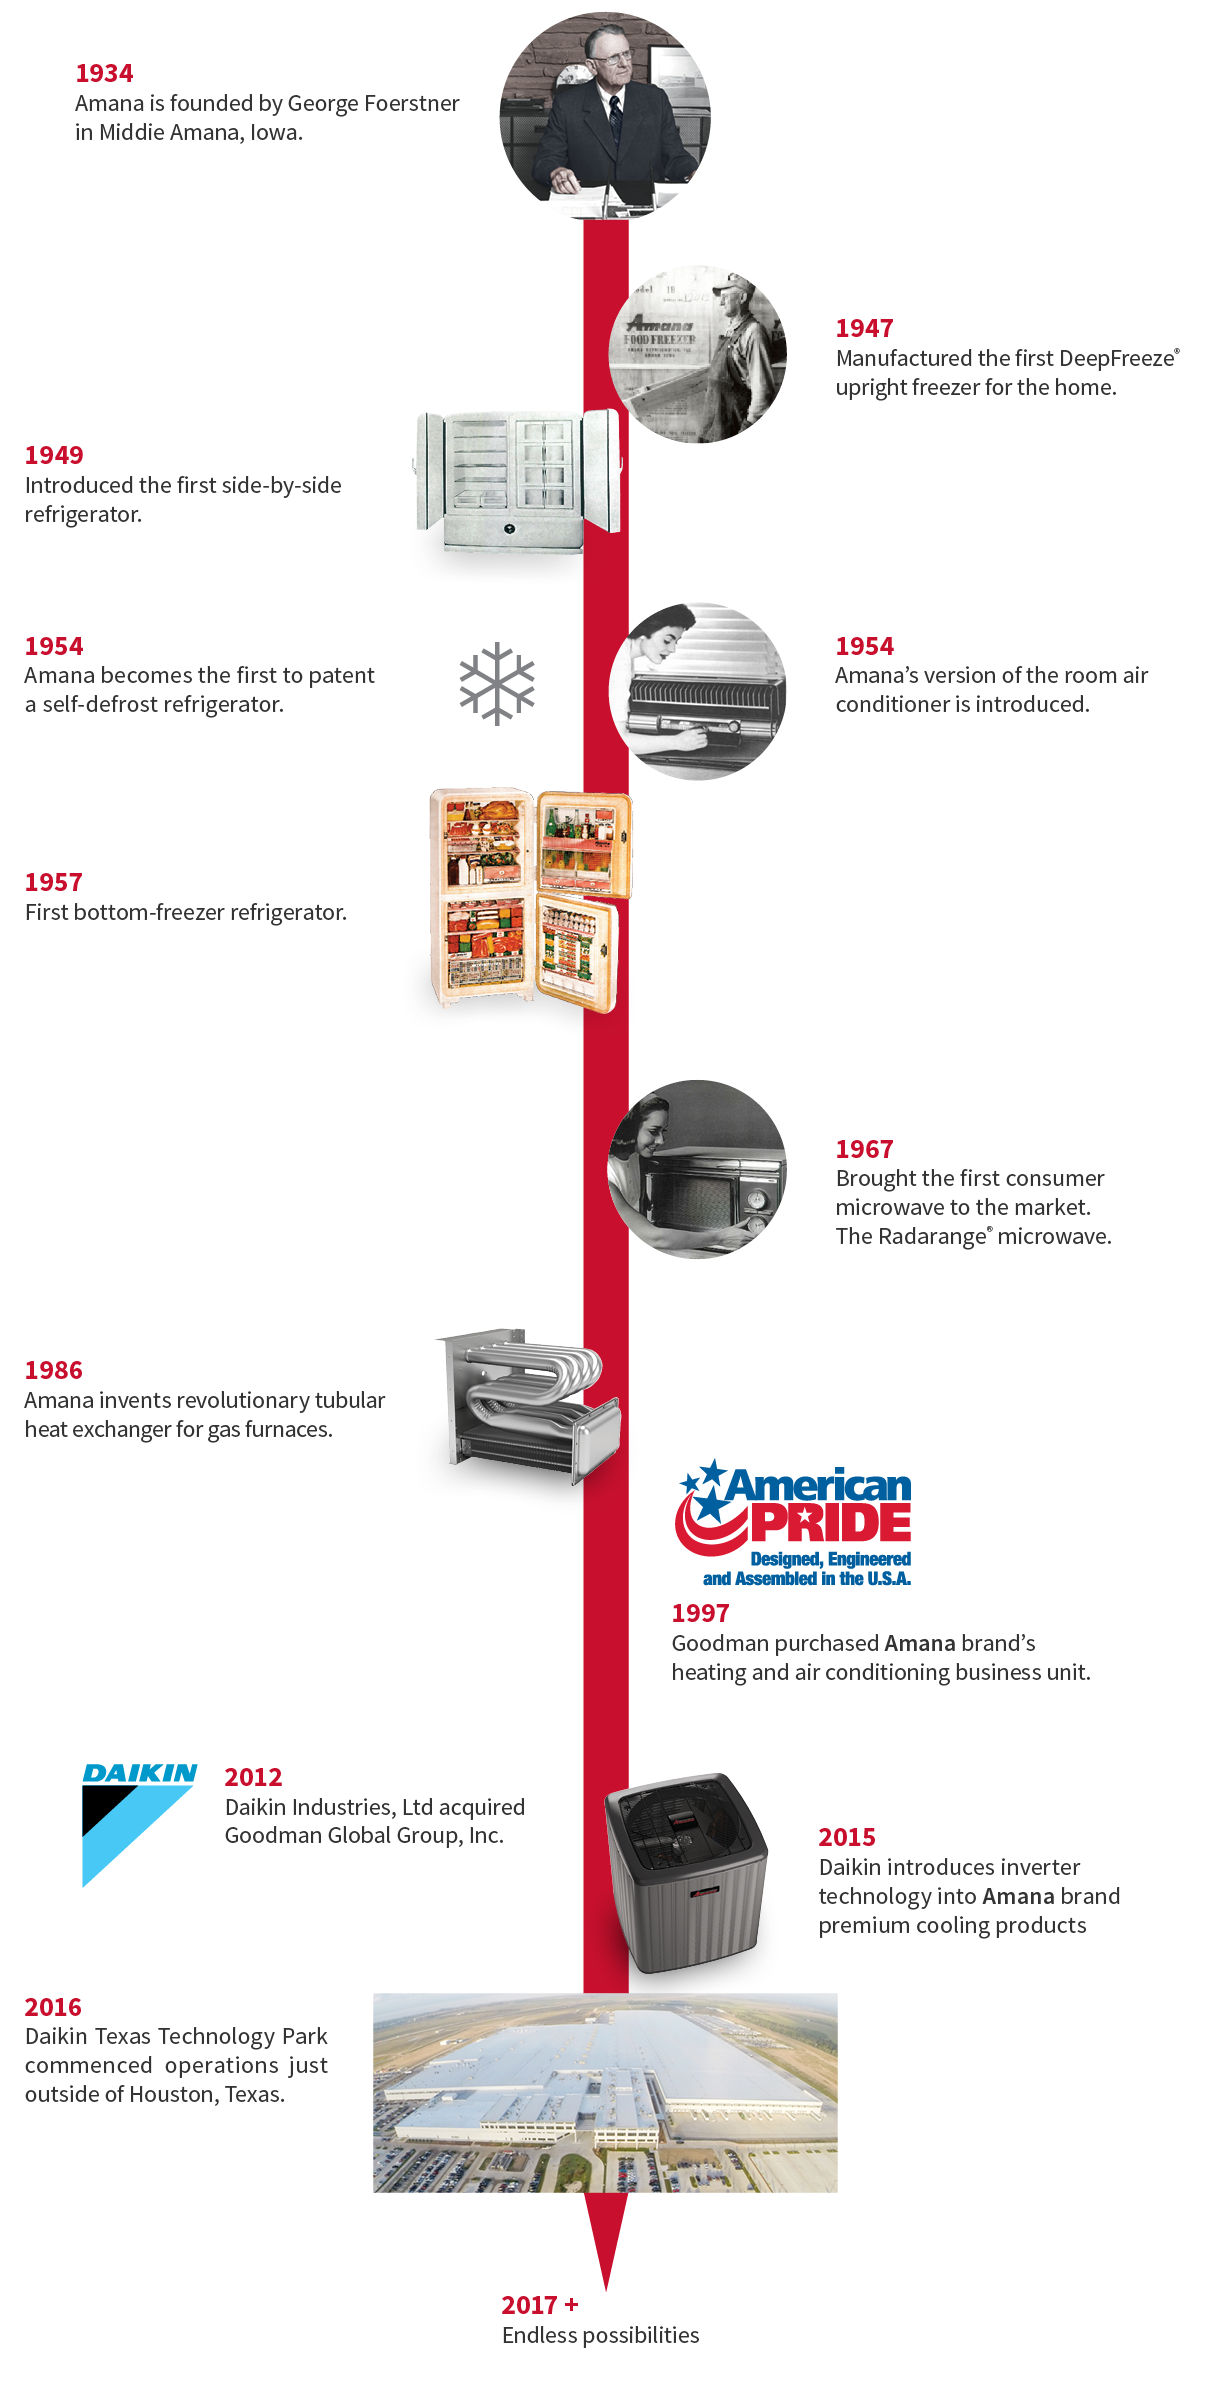 Trace The History Of Amana Brand